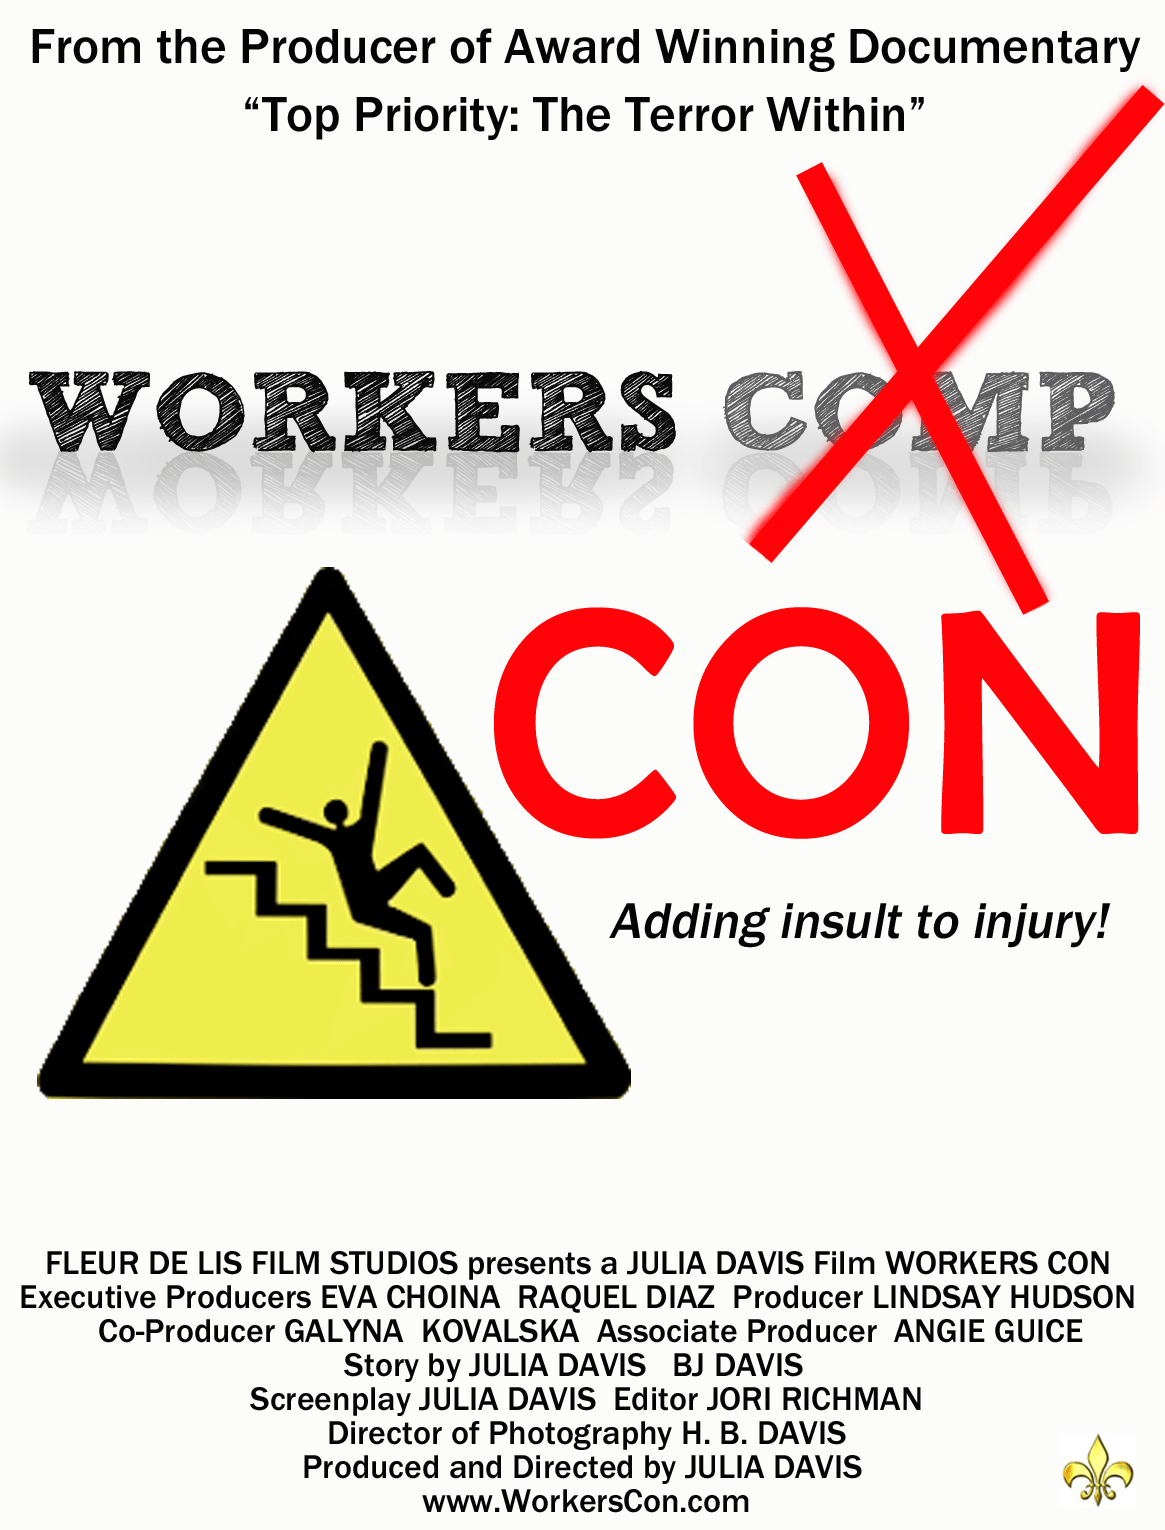 Workers Con